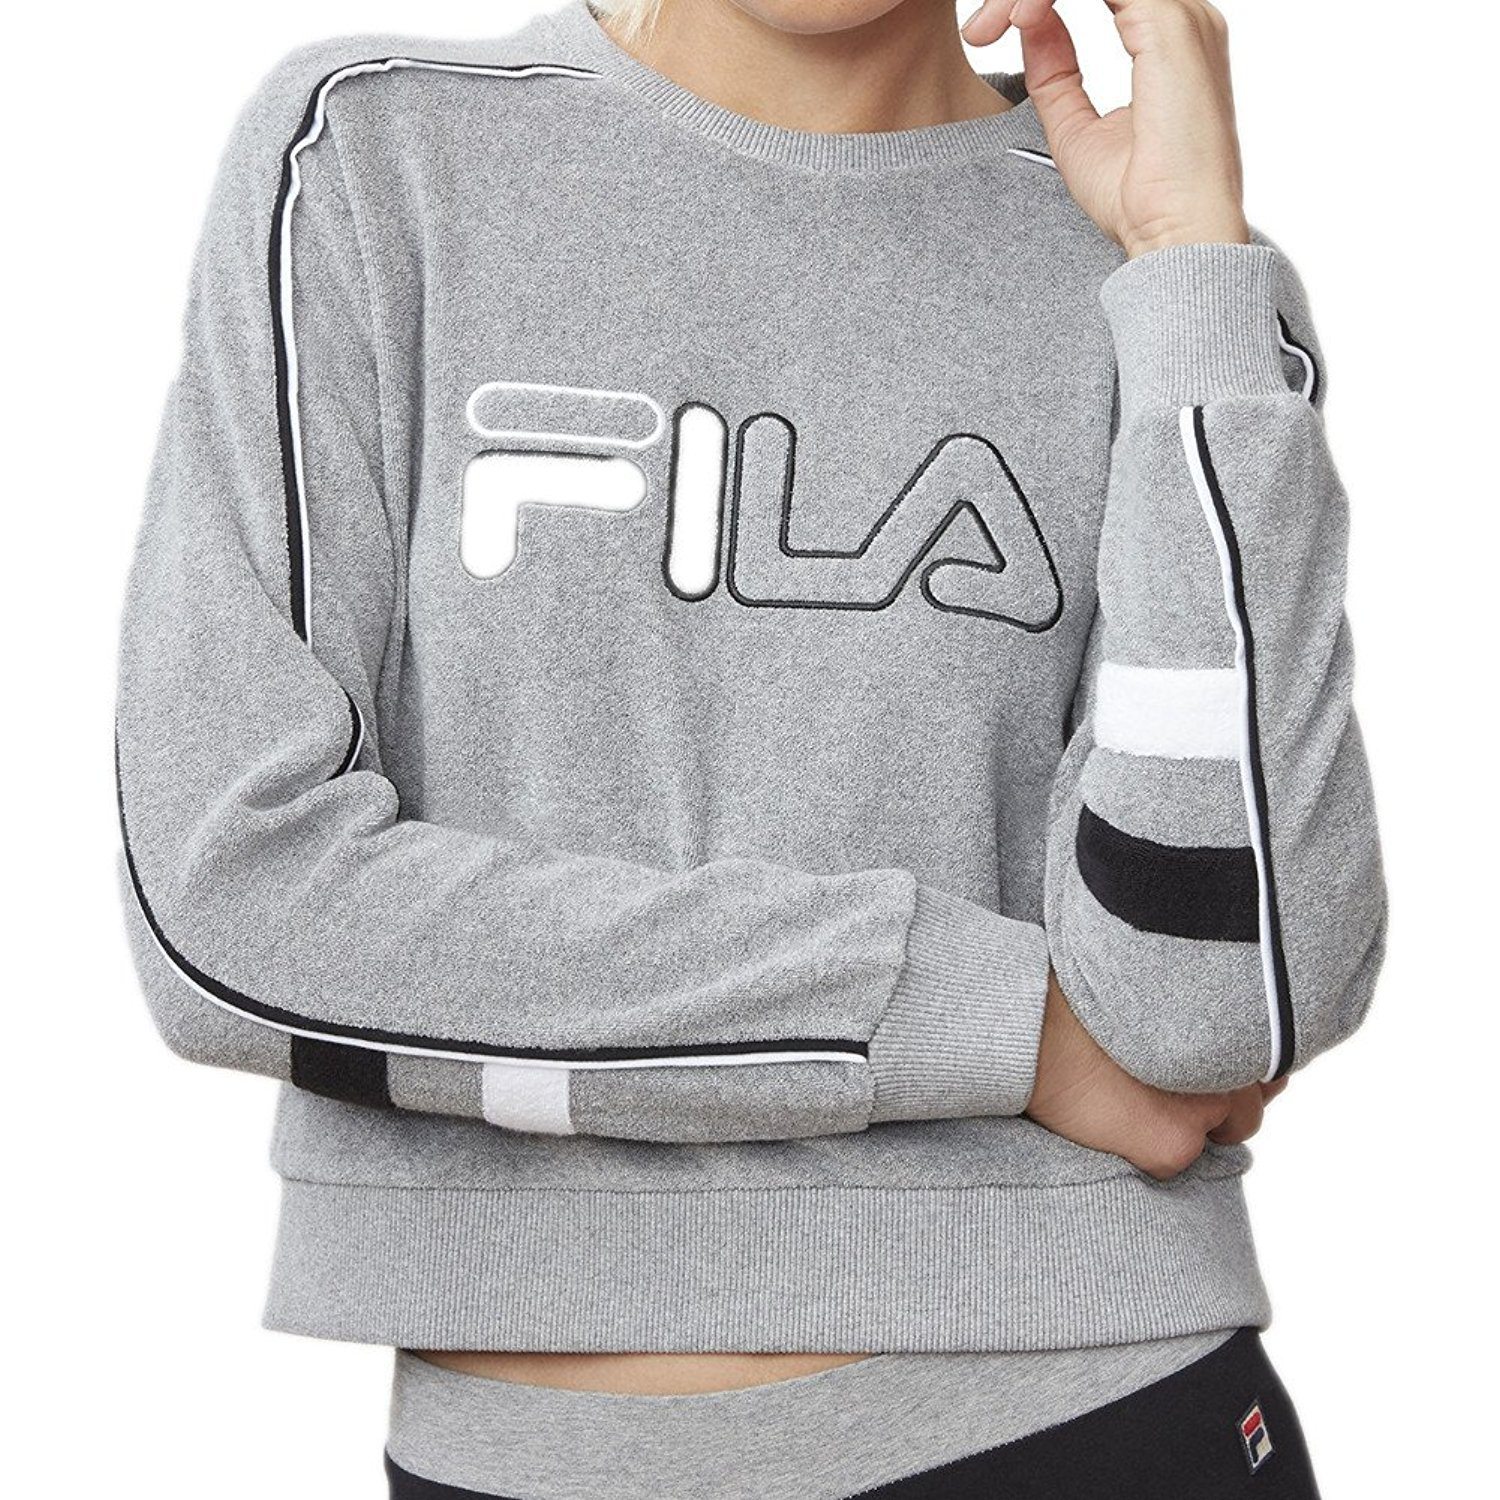 6c7065cc4b56 Top 10 wholesale Lightweight Crew Neck Sweater - Chinabrands.com